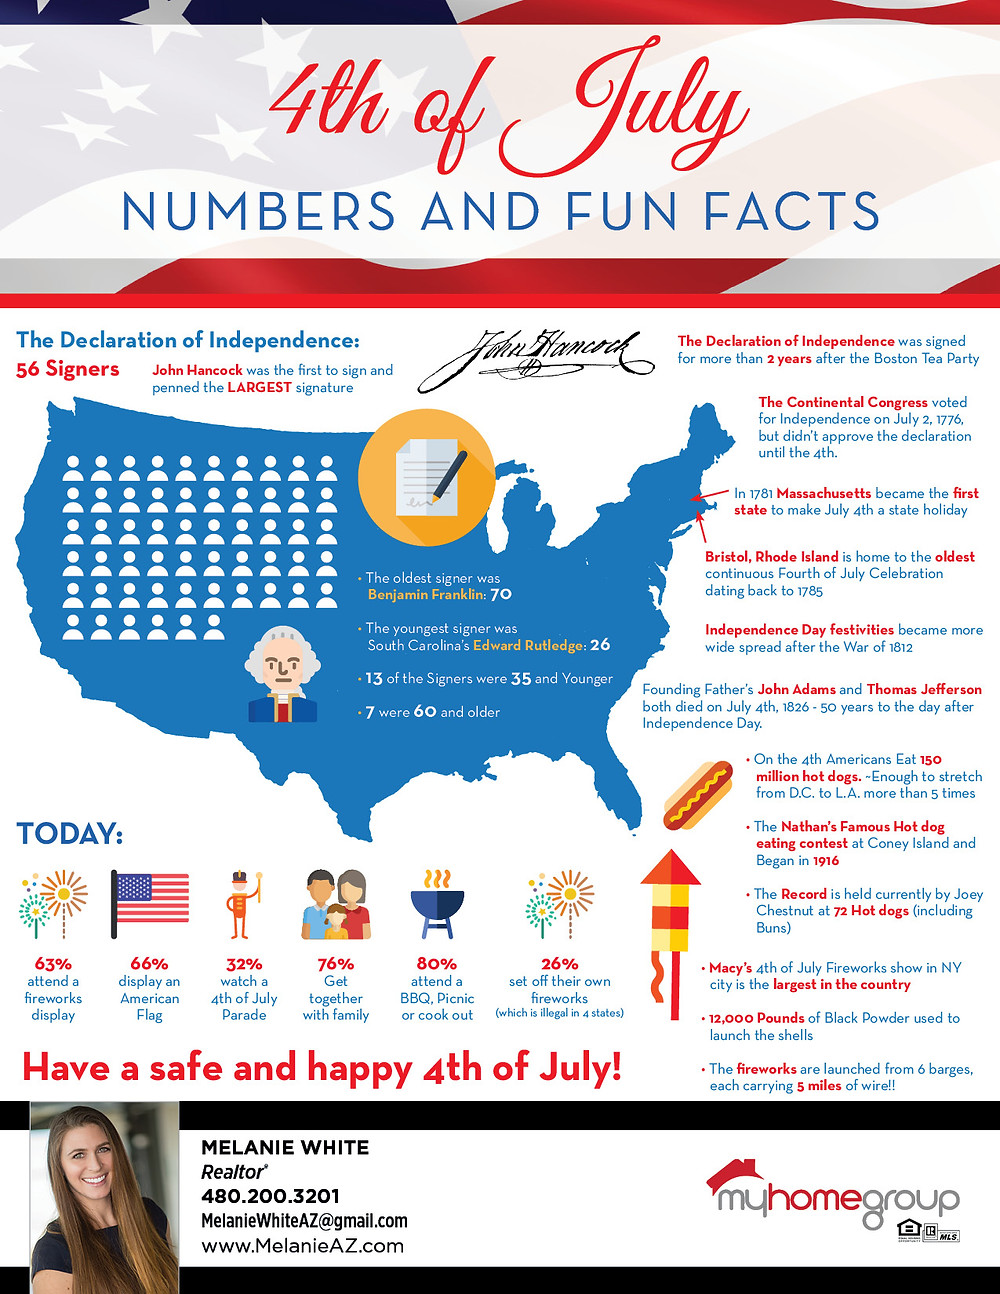 4th of July Numbers and Fun Facts